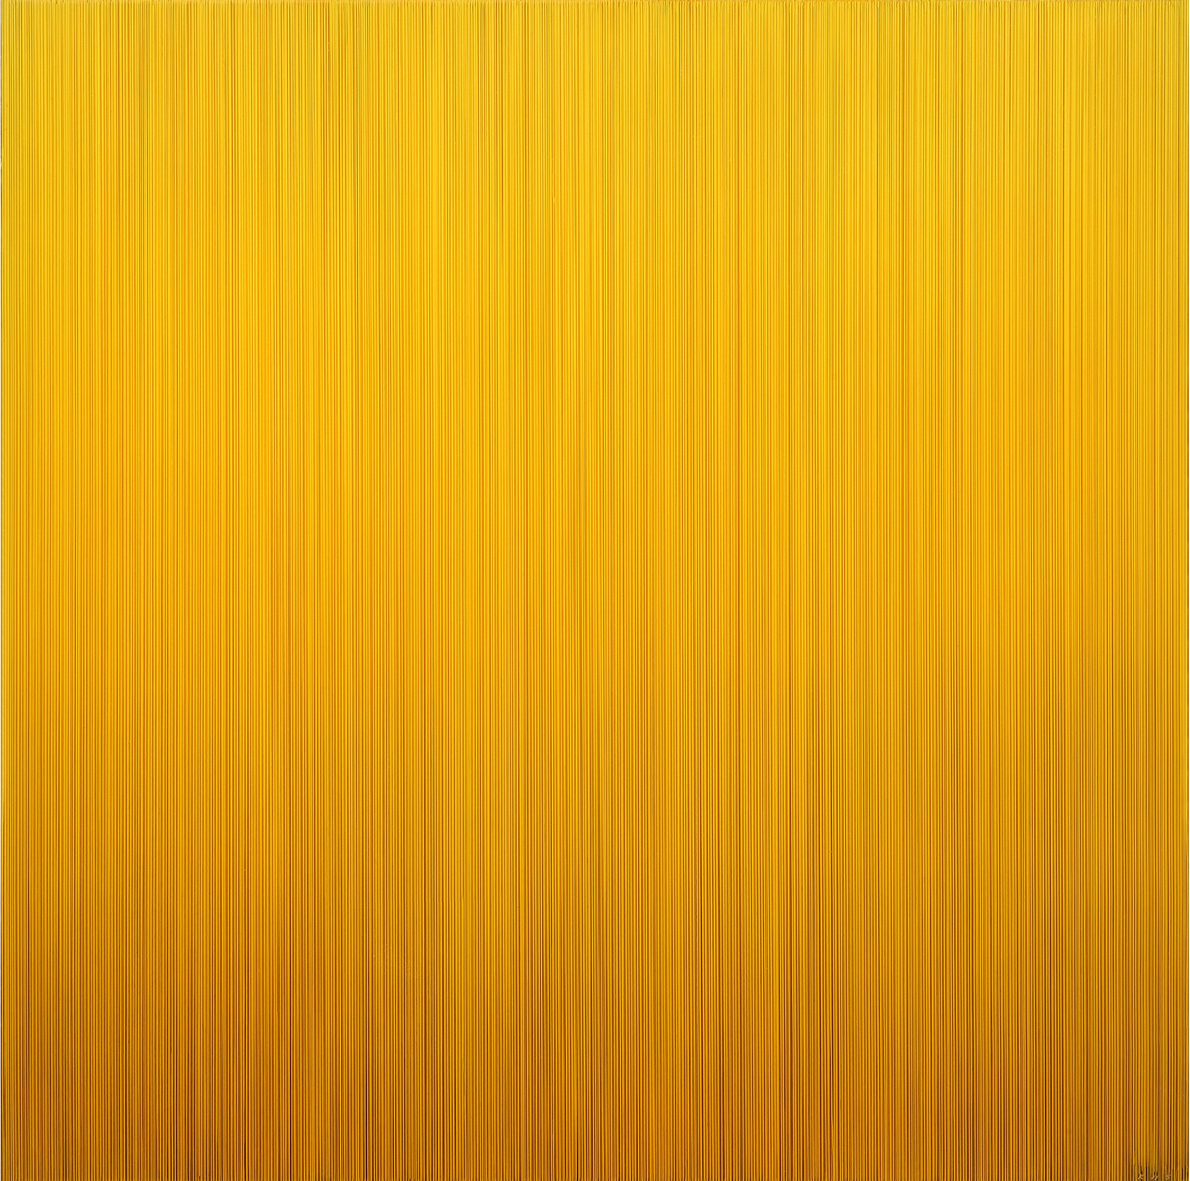 Who likes K yellow?, 2016, Epoxy resin, acrylic color, aluminium frame, 100x100x8cm